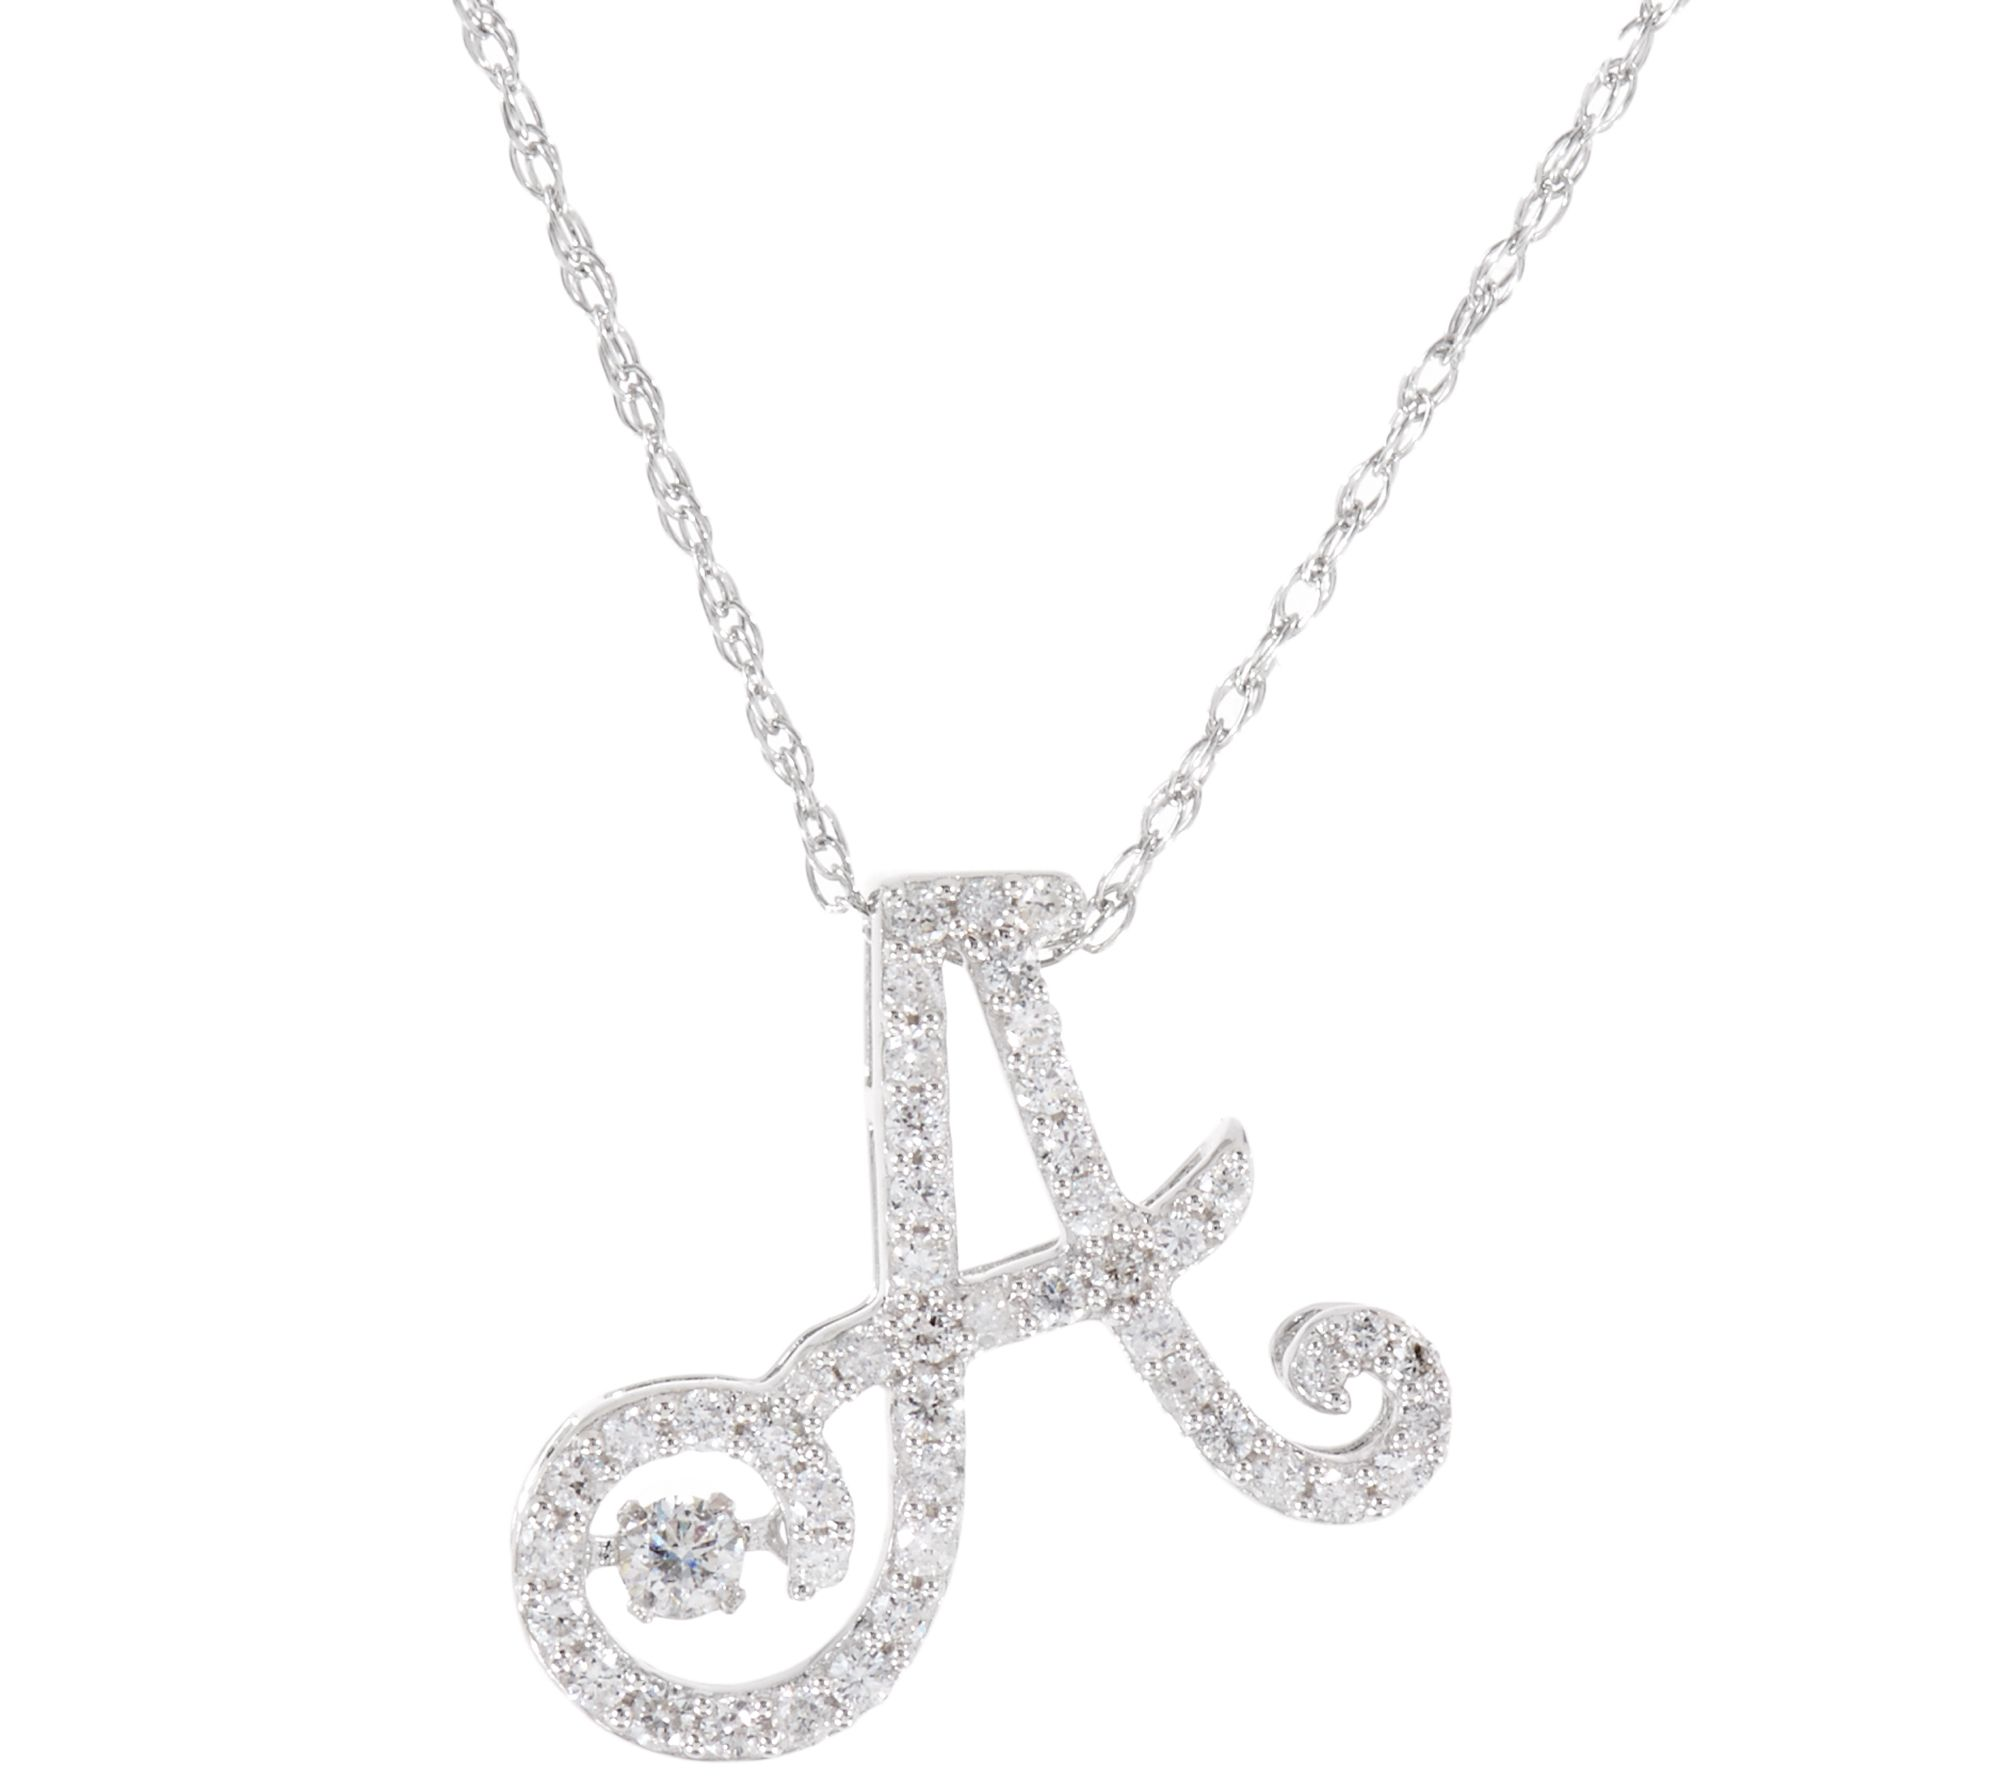 accessories initial chains pinterest necklace jewelry ts j pin